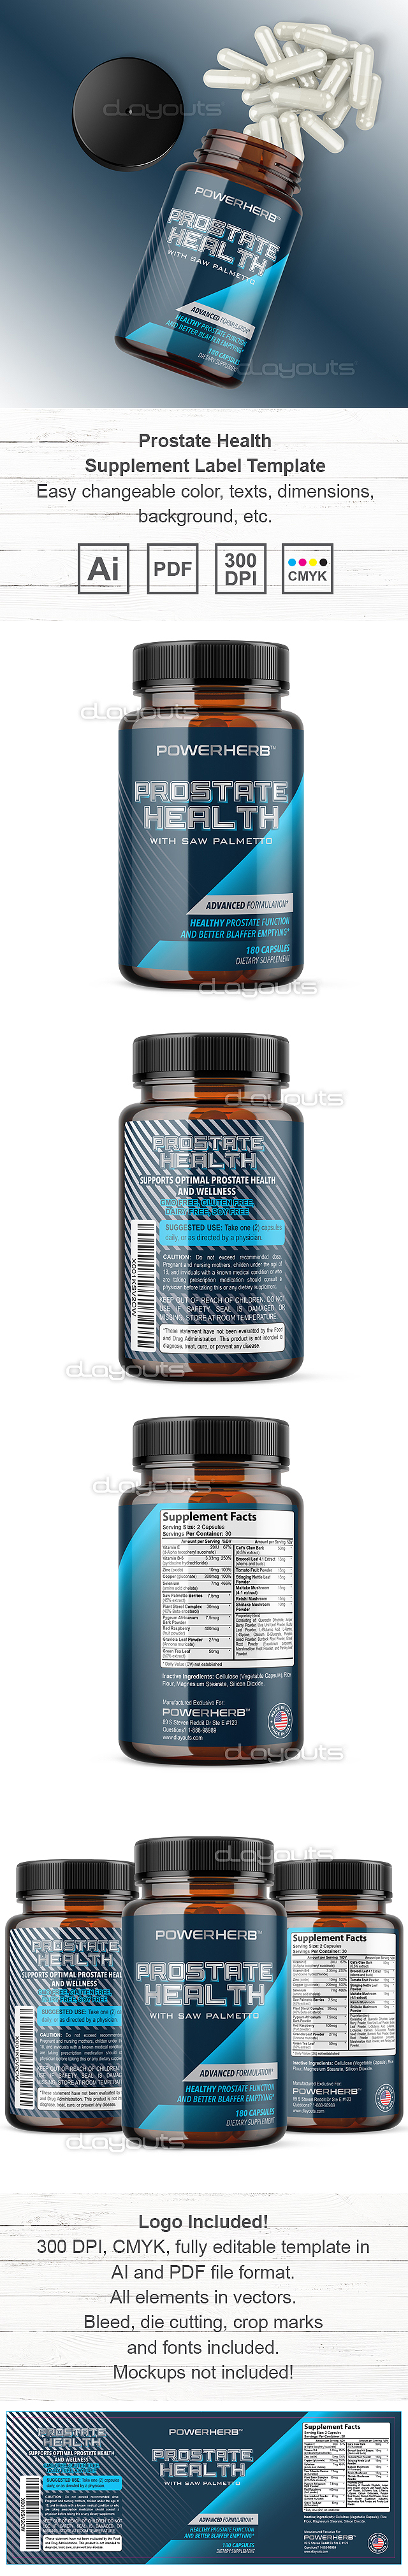 Prostate Health Supplement Label Template